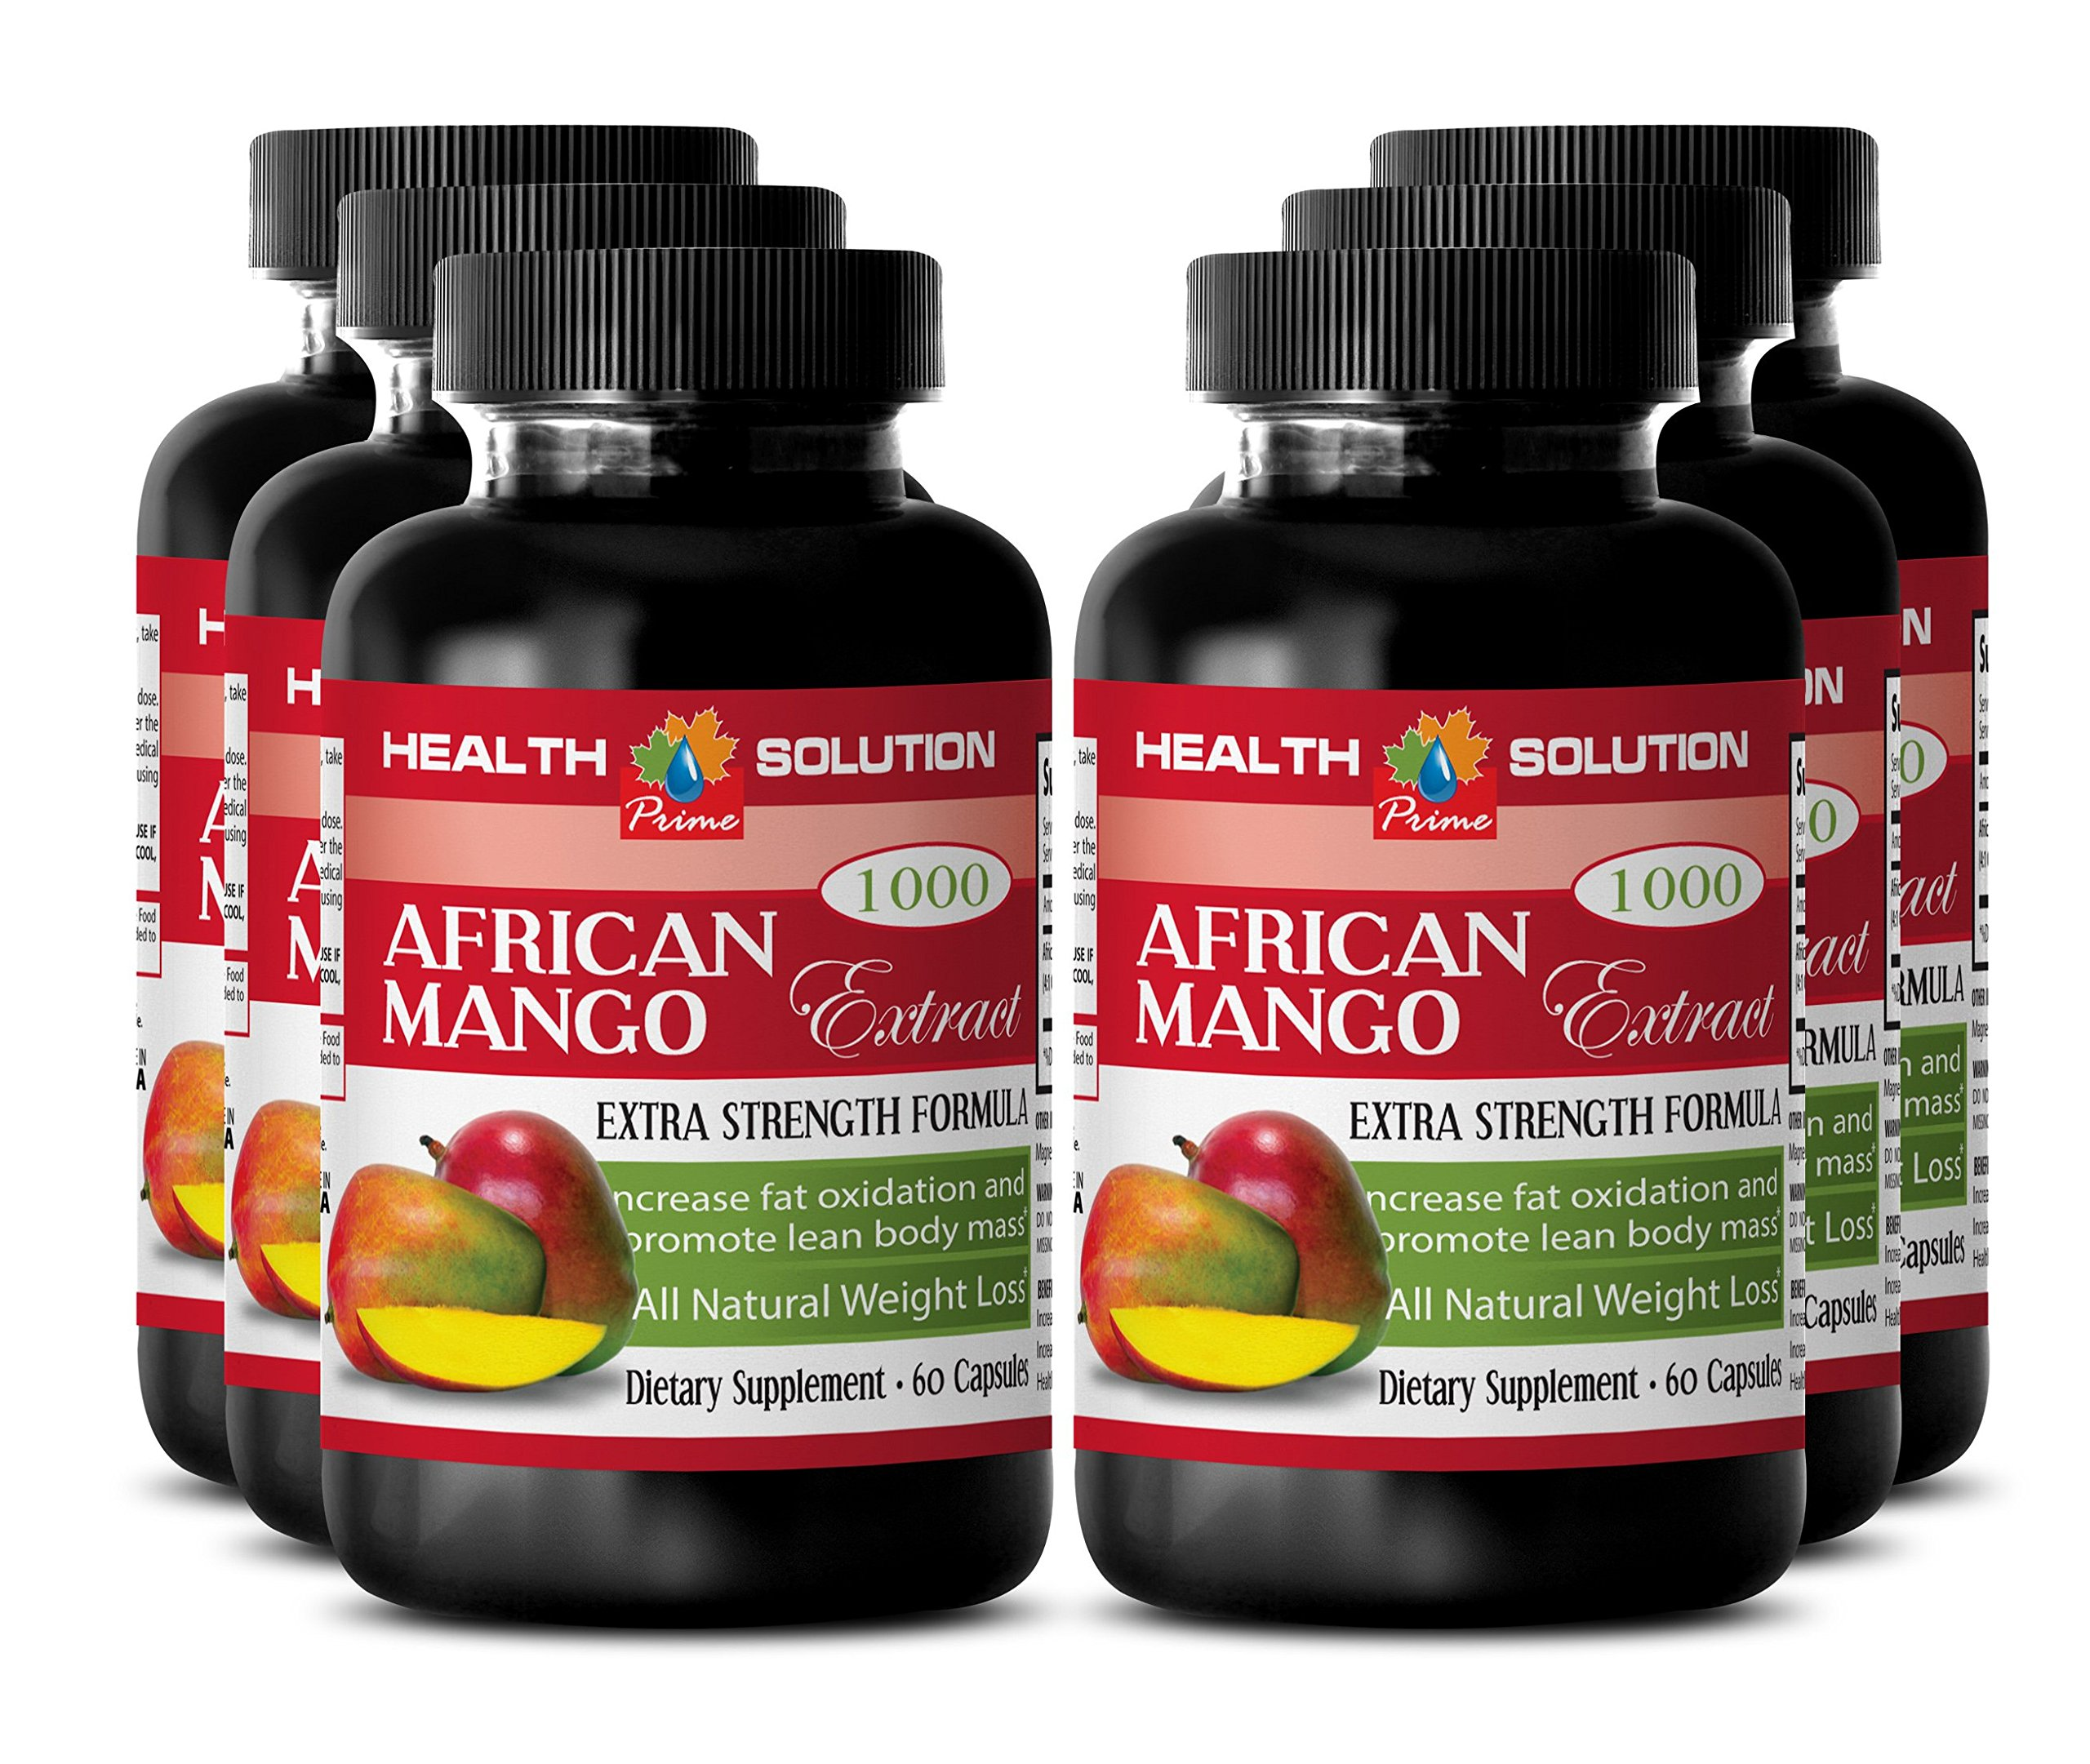 African Mango Premium Cleanse - African Mango 4:1 Extract 1000 mg - Weight loss herbal detox (6 Bottles 360 capsules)